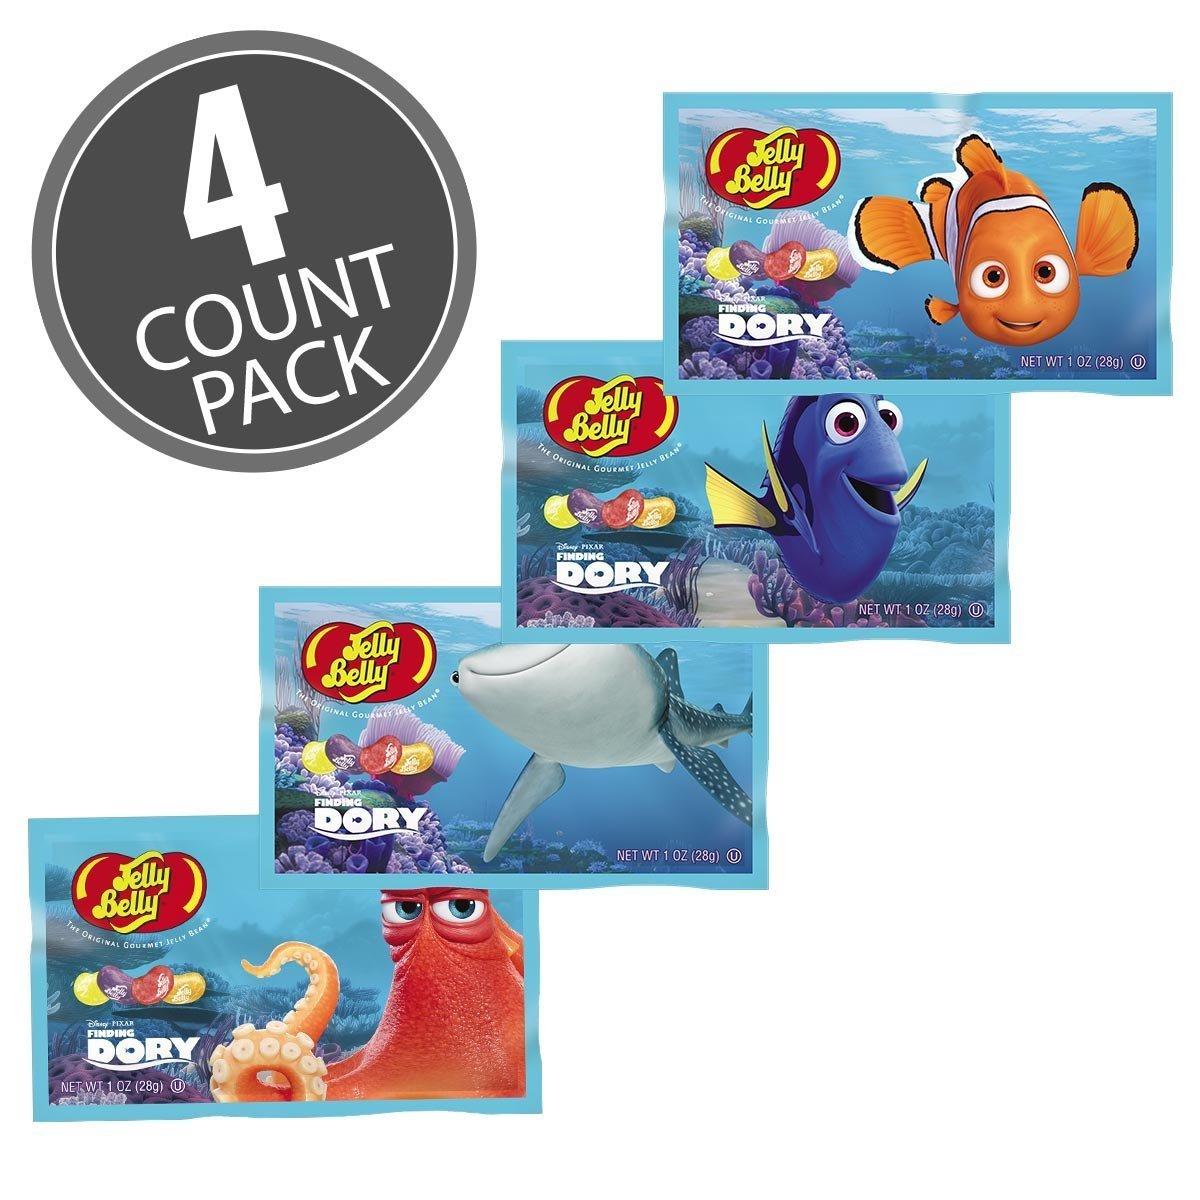 Jelly Belly Finding Dory Disney Pixar Jelly Beans 1 oz Bags (4 Pack) by